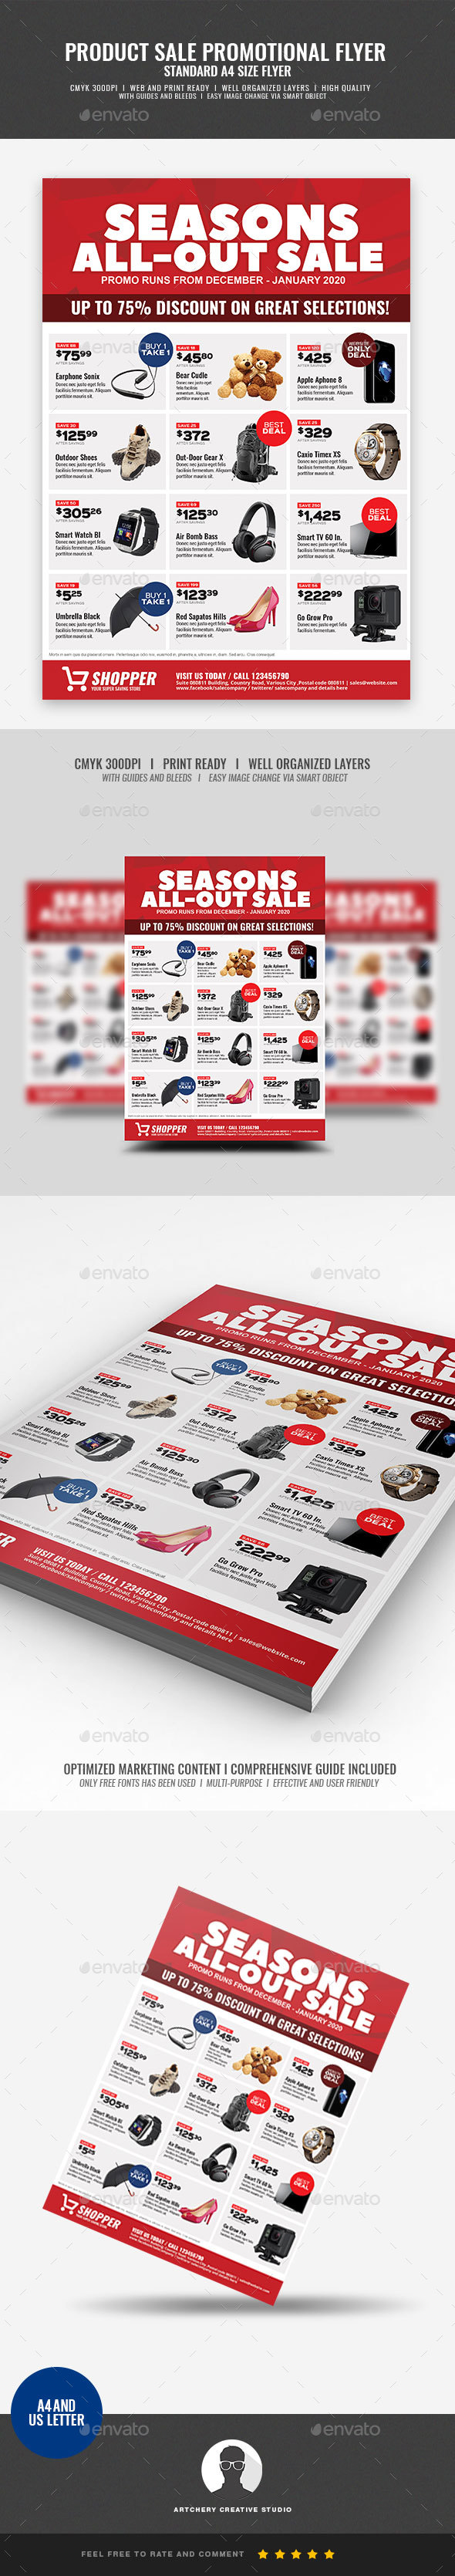 Product Promotional Sale Flyer - Commerce Flyers